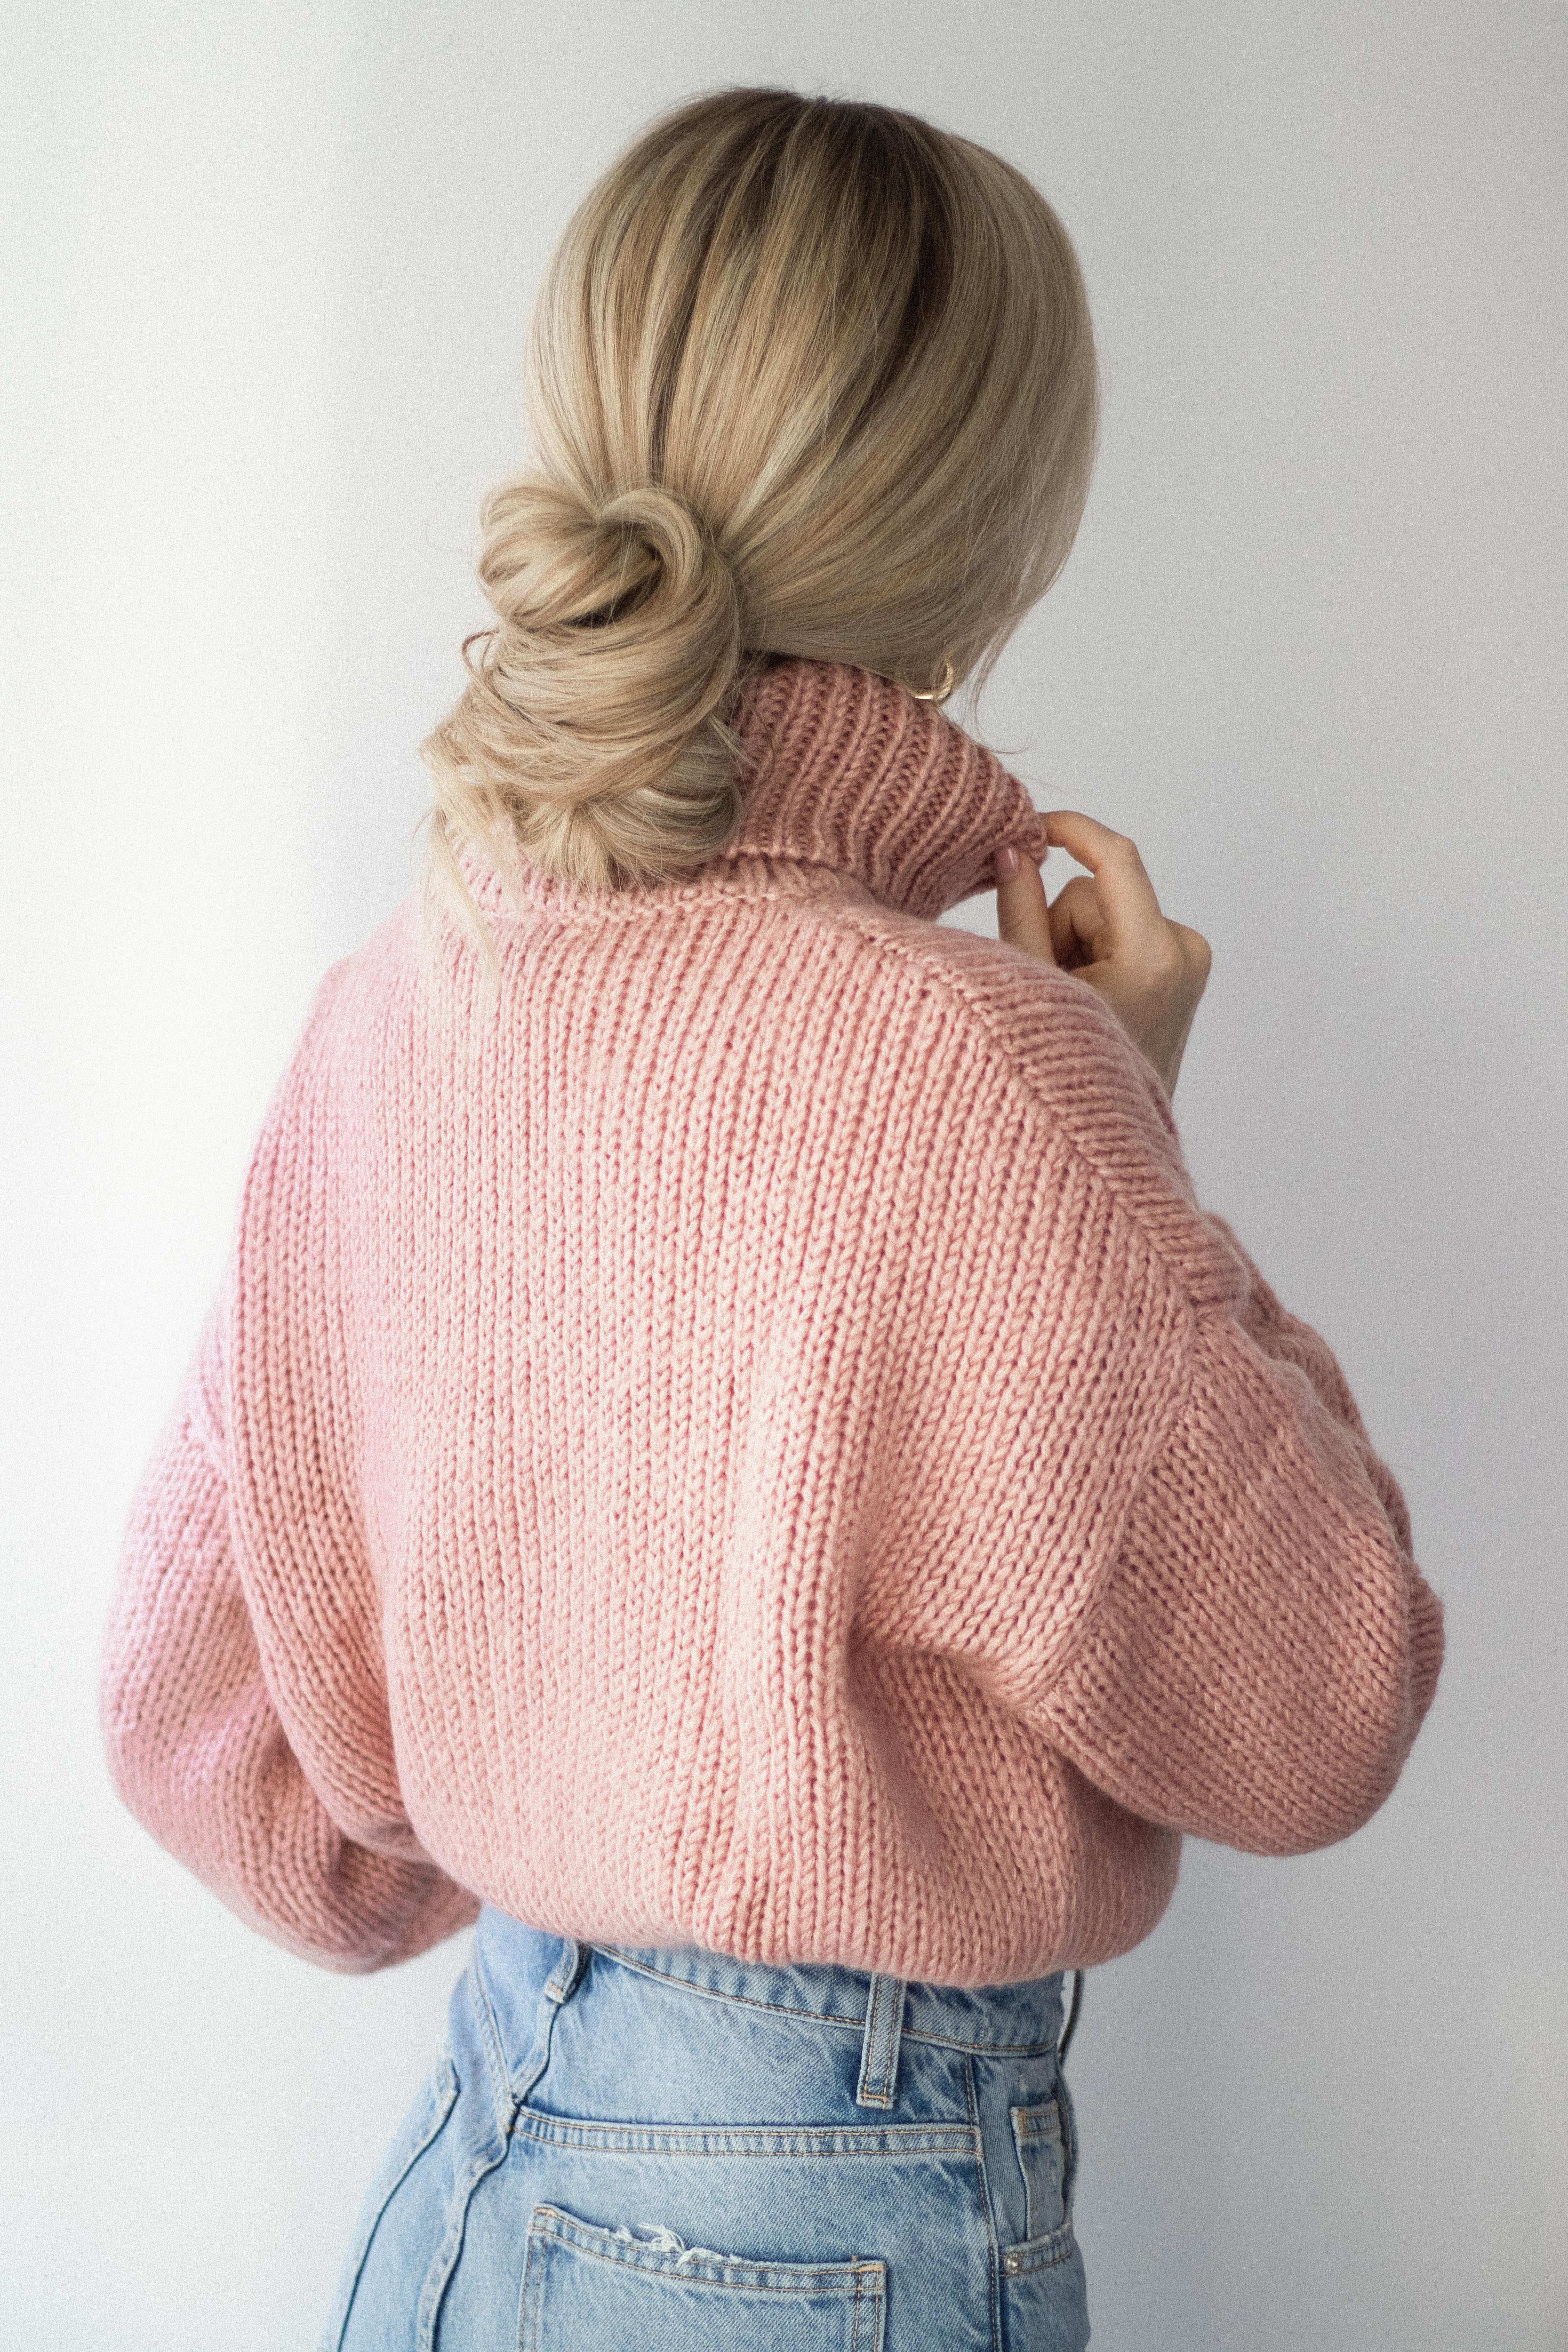 3 EASY HAIRSTYLES TO TRY THIS HOLIDAY   www.alexgaboury.com